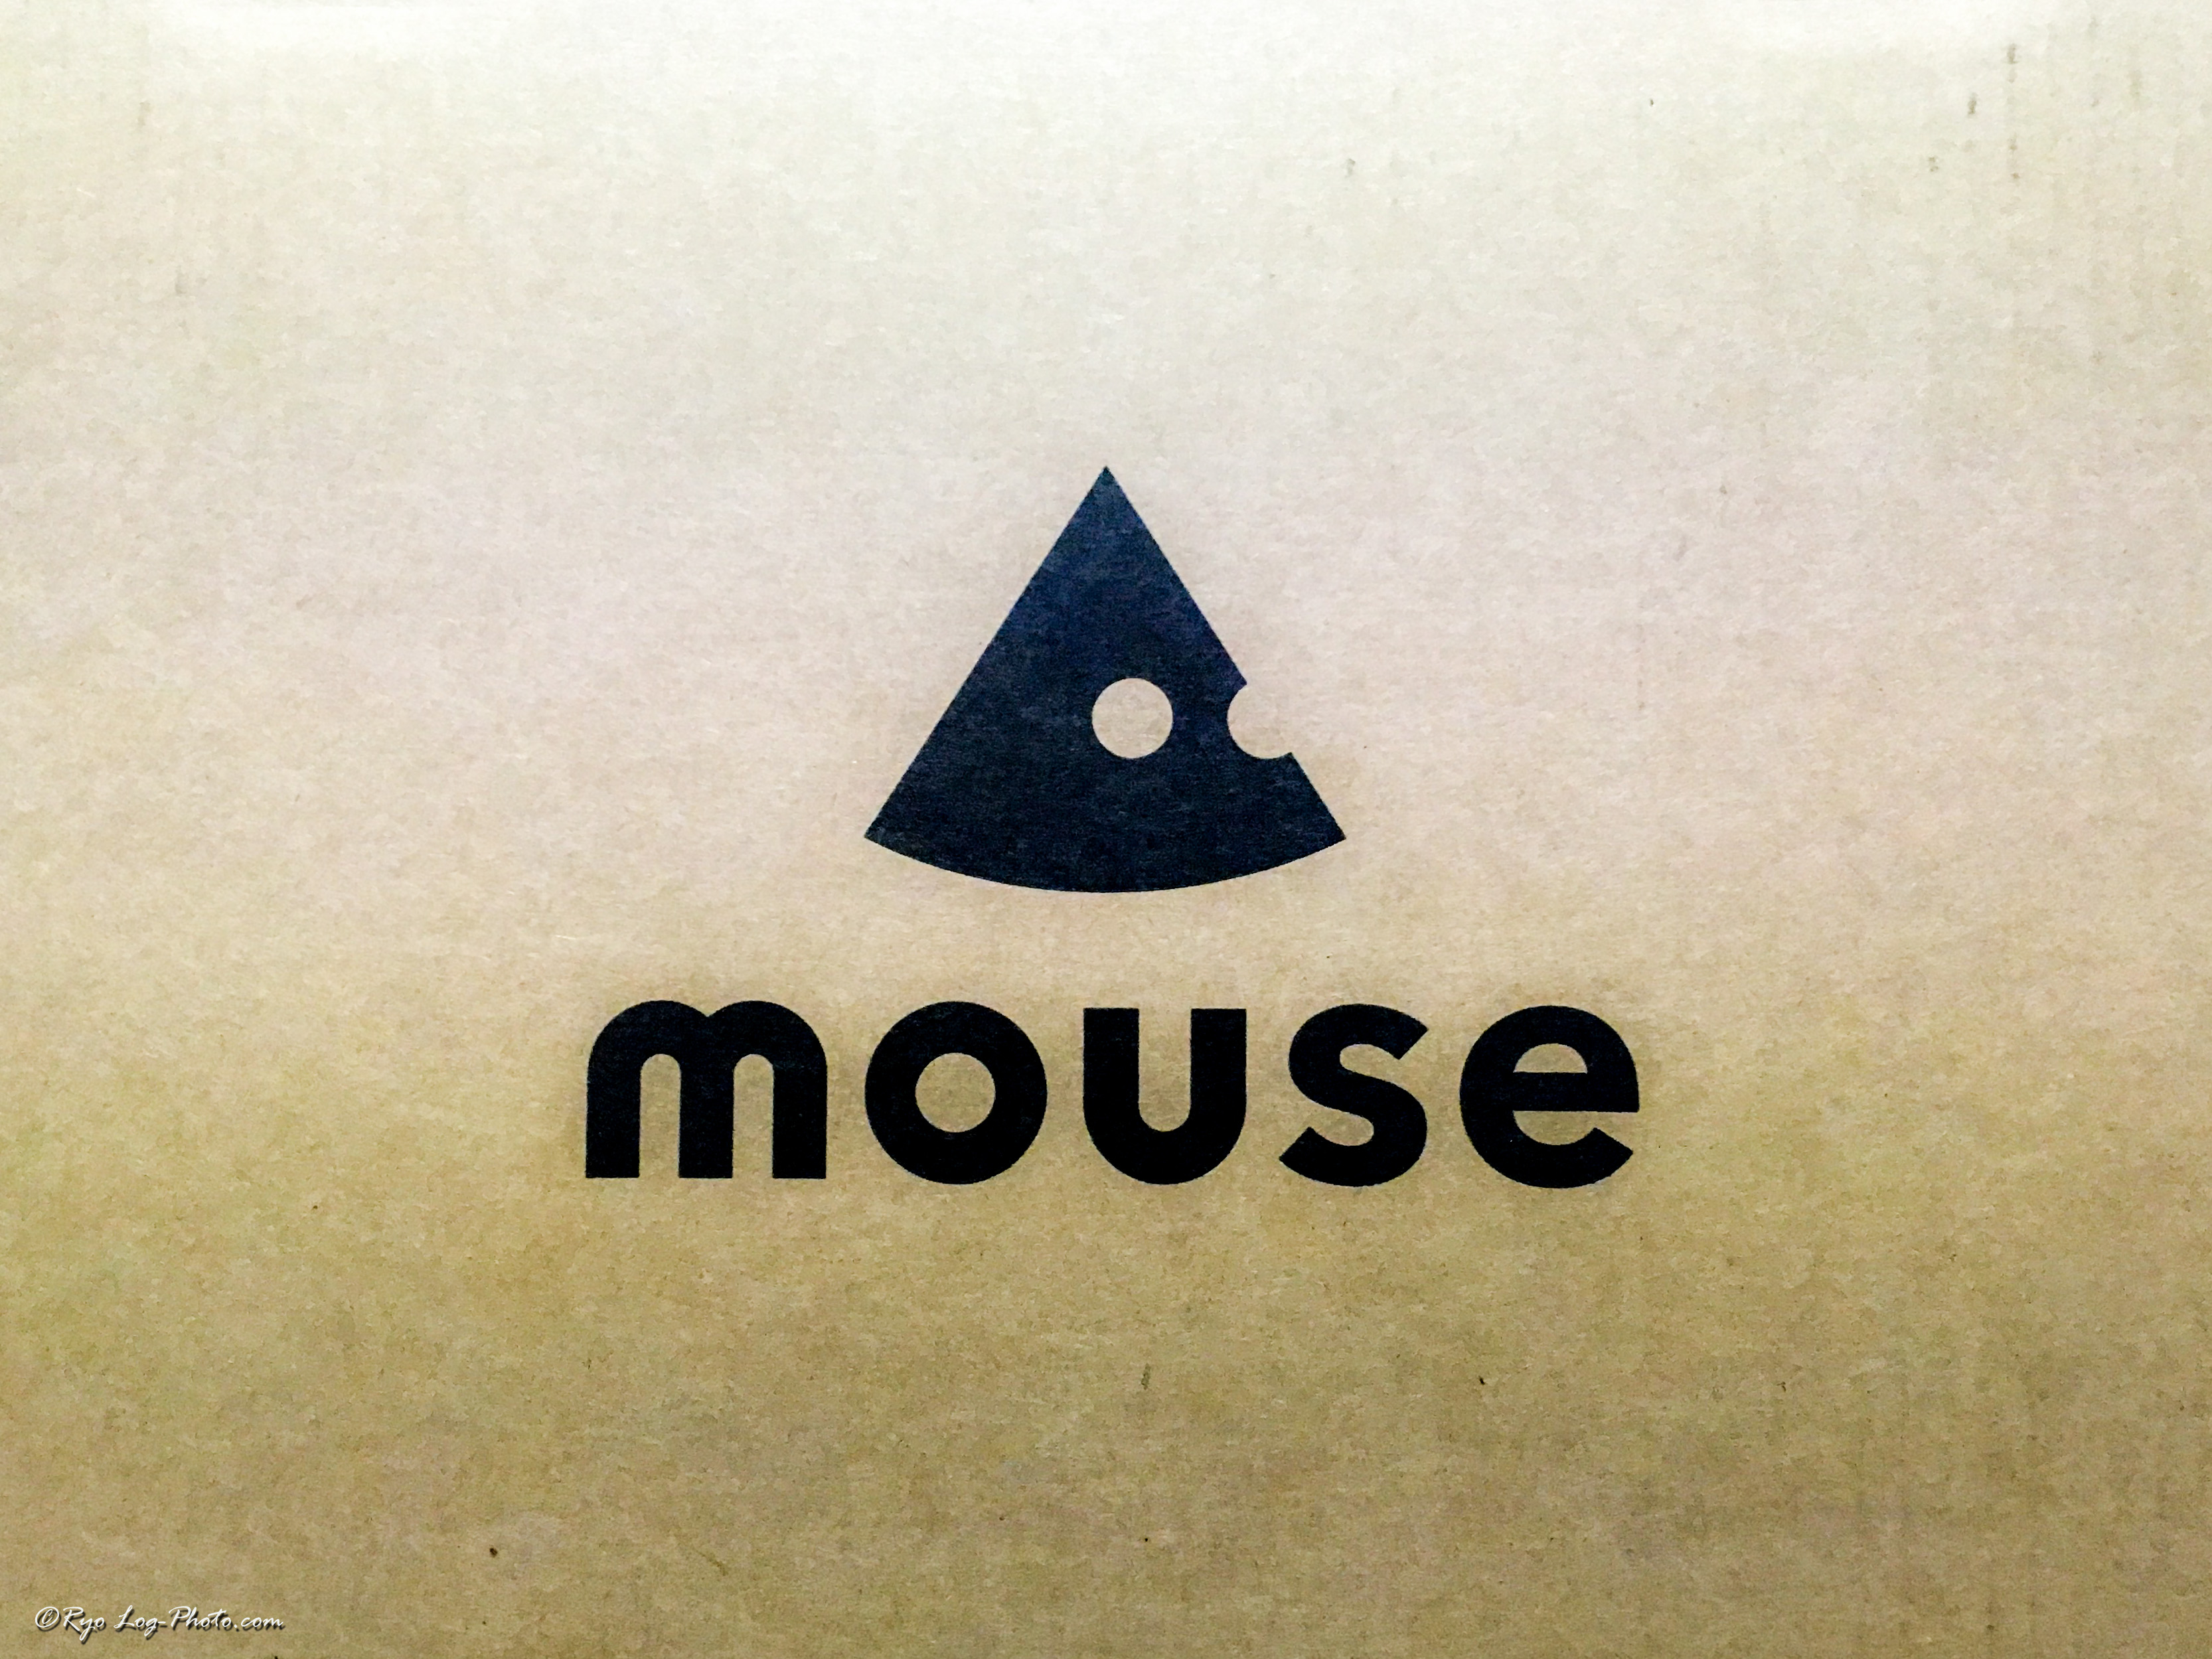 mouse マウスコンピューター購入